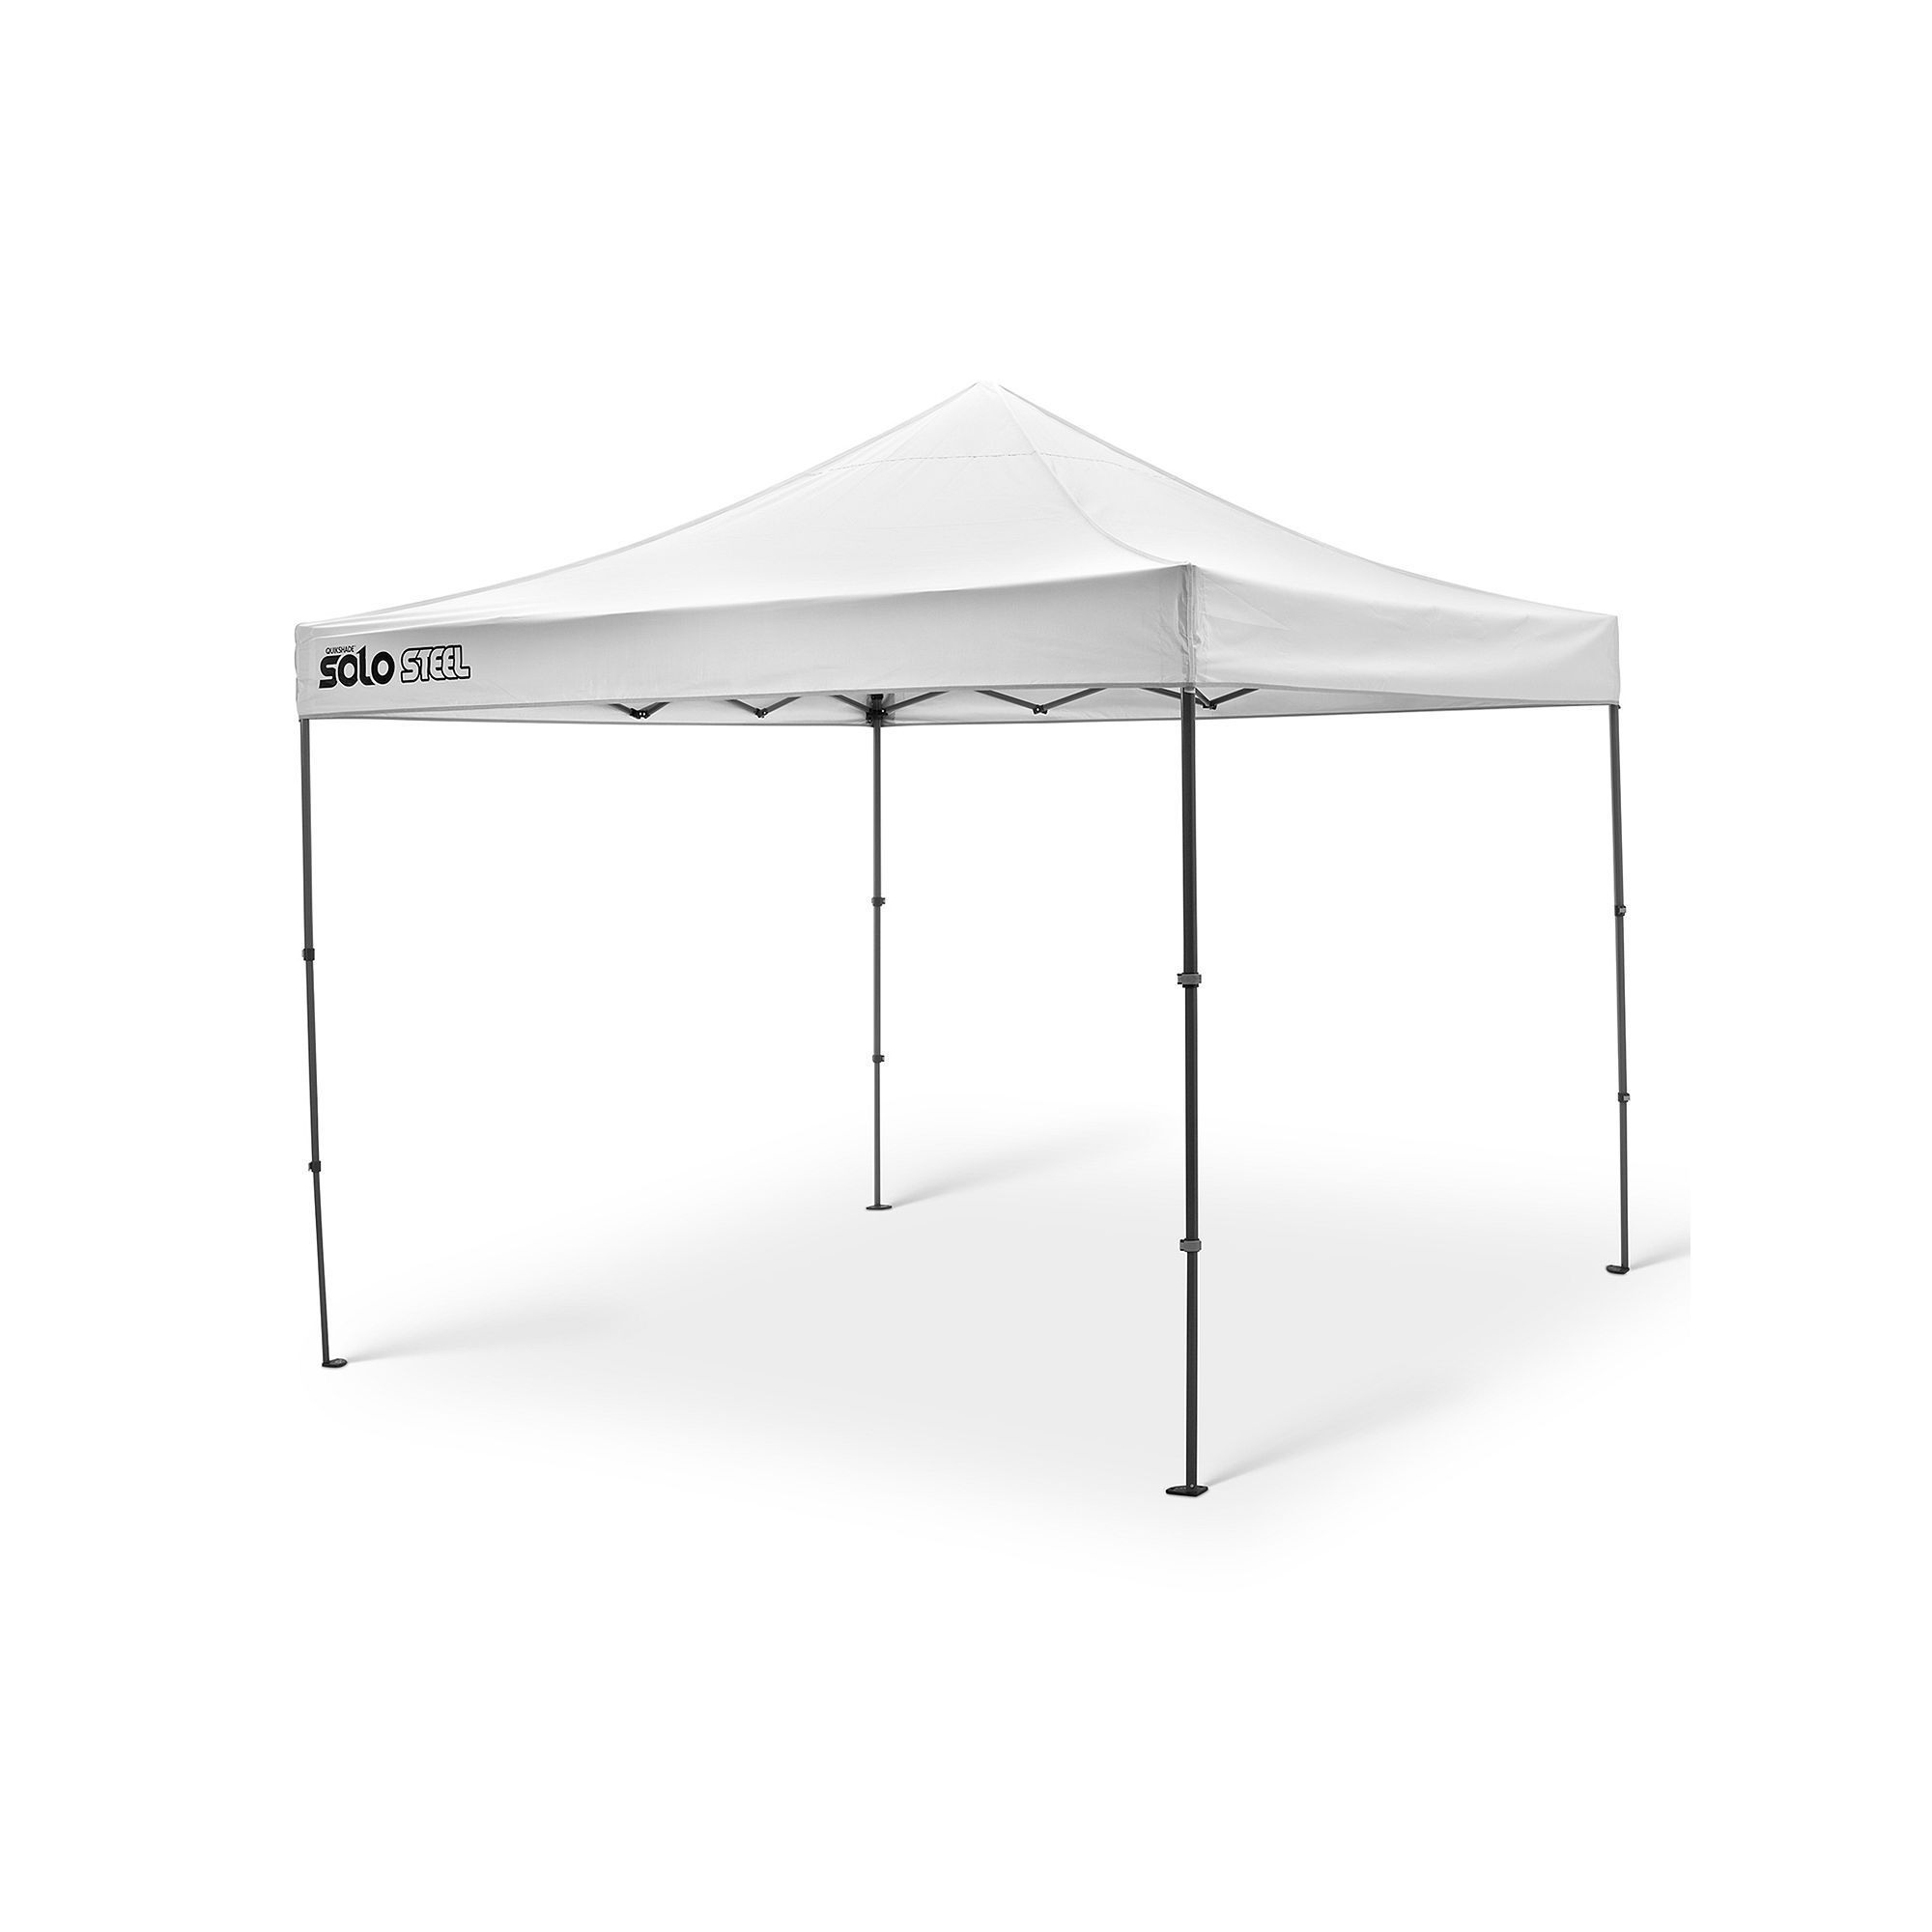 Quik Shade Solo Steel 100 10 X 10 Instant Canopy Instant Canopy Canopy Steel Canopy